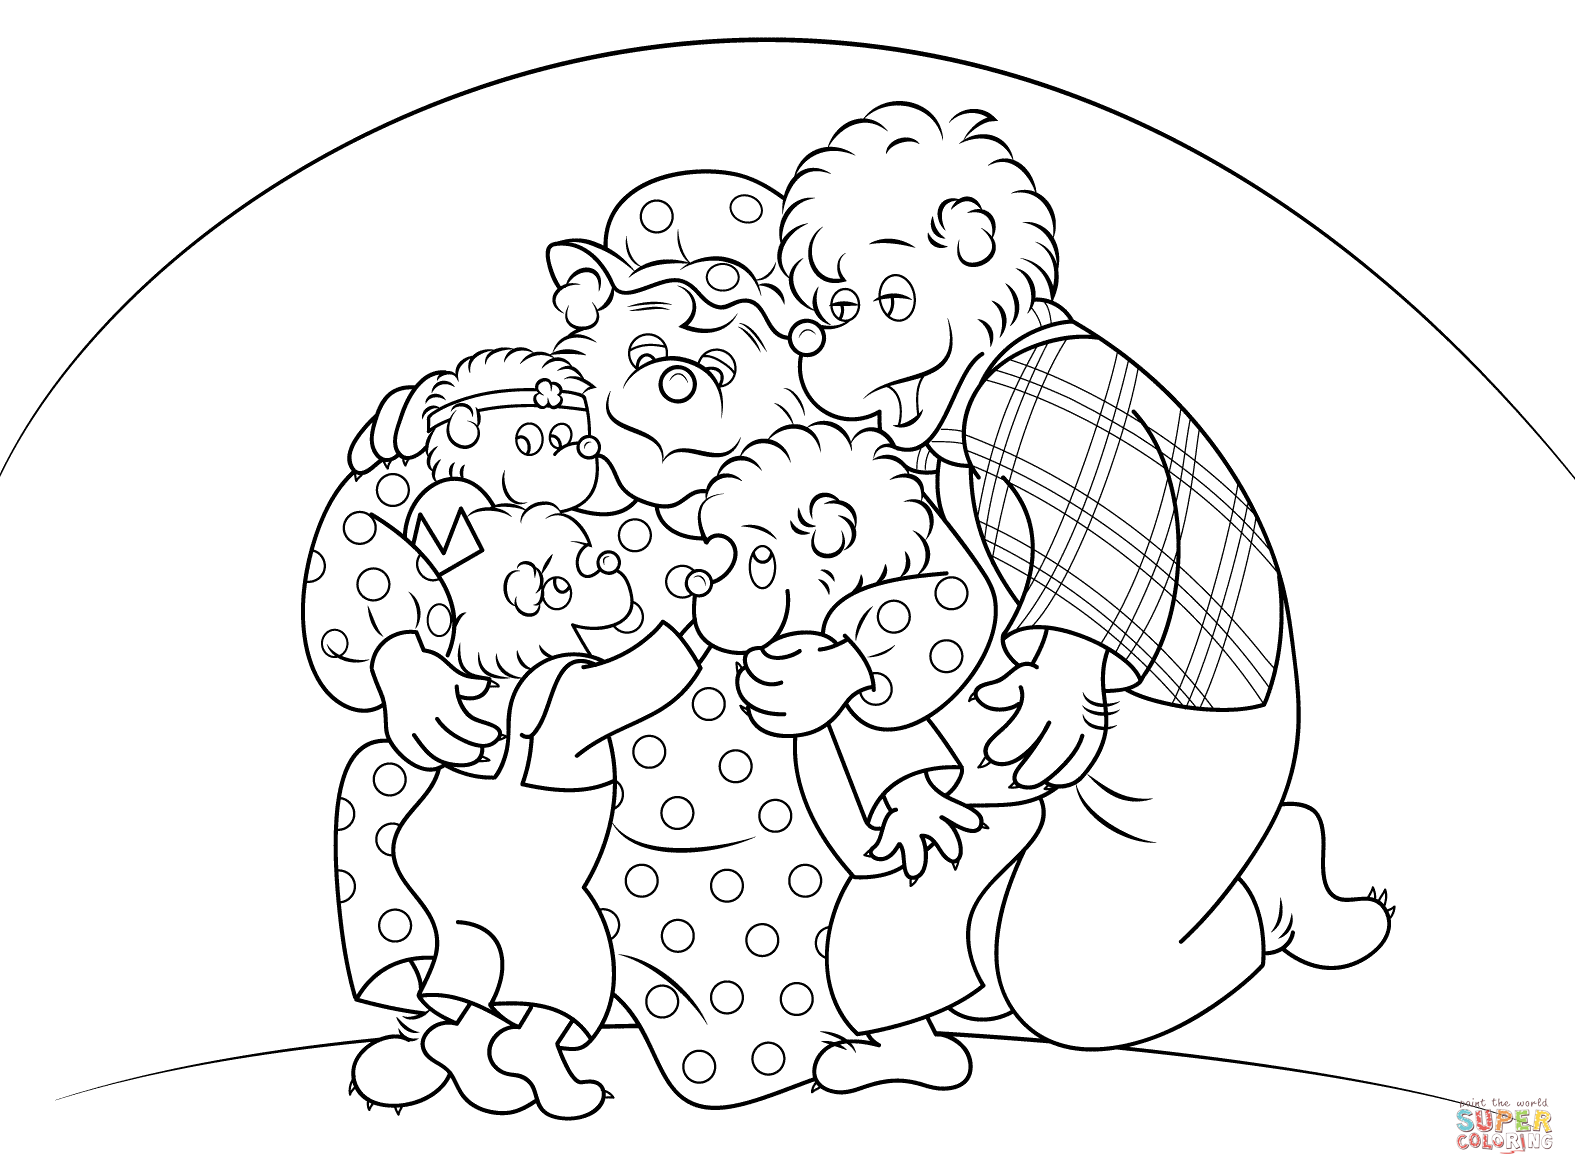 Berenstain Bears Are Hugging Coloring Page